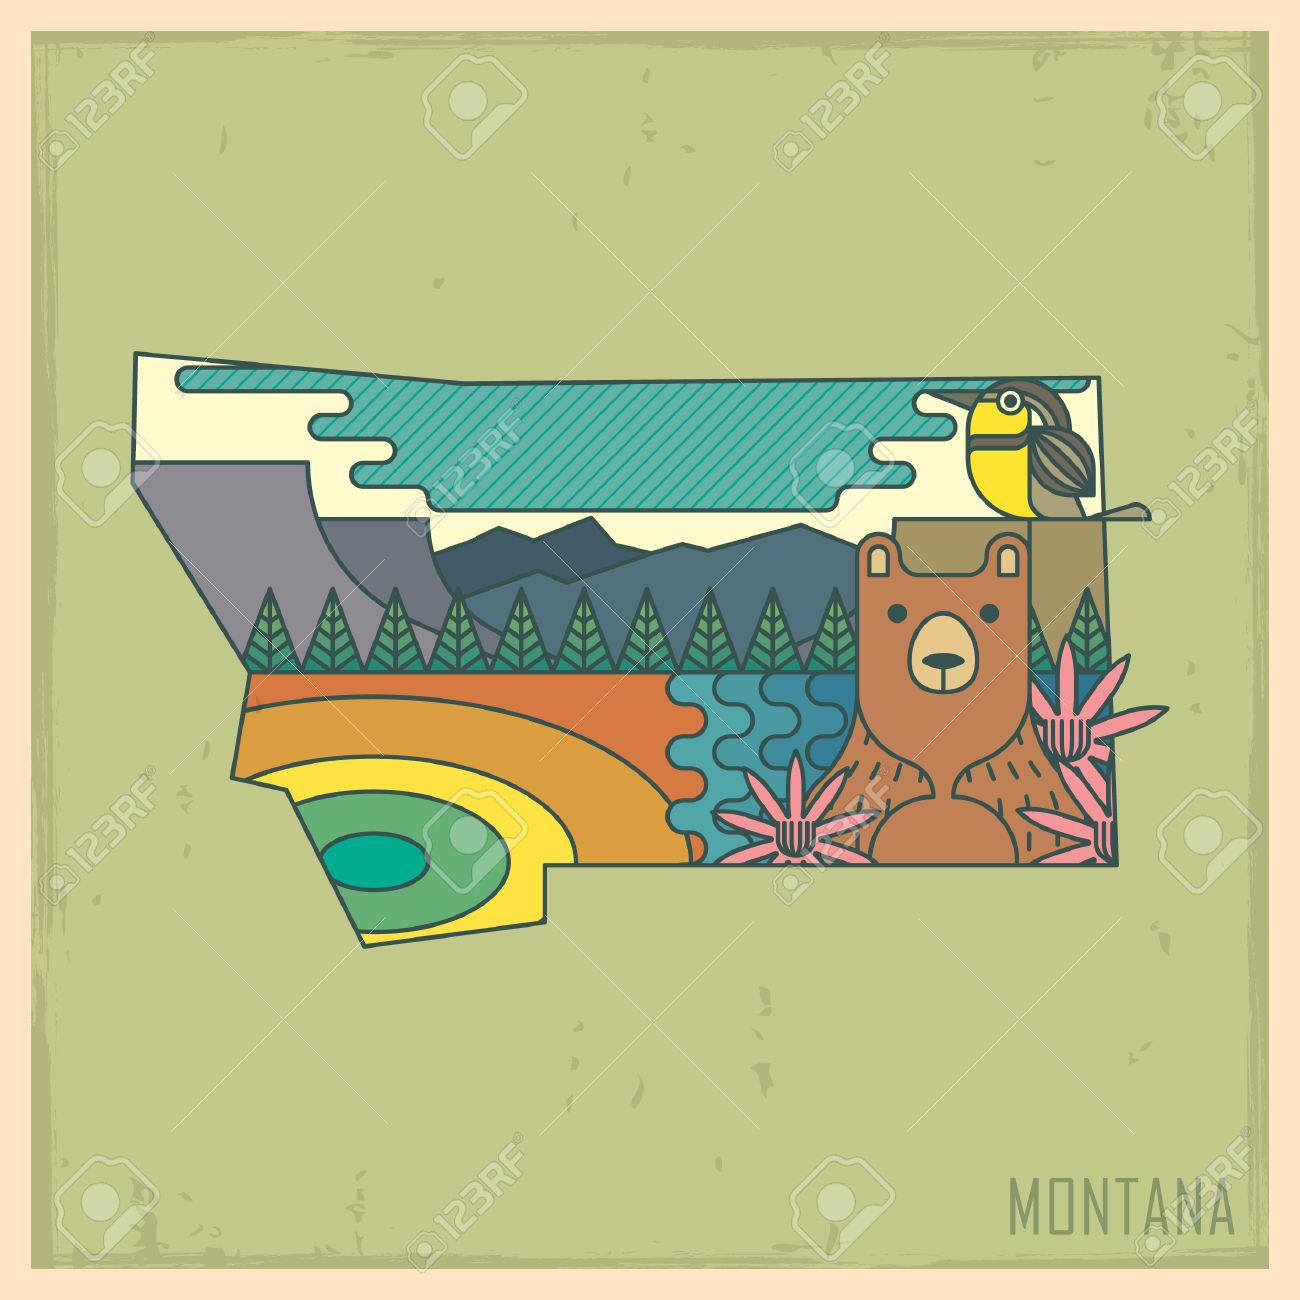 Montana State Map Royalty Free Cliparts Vectors And Stock